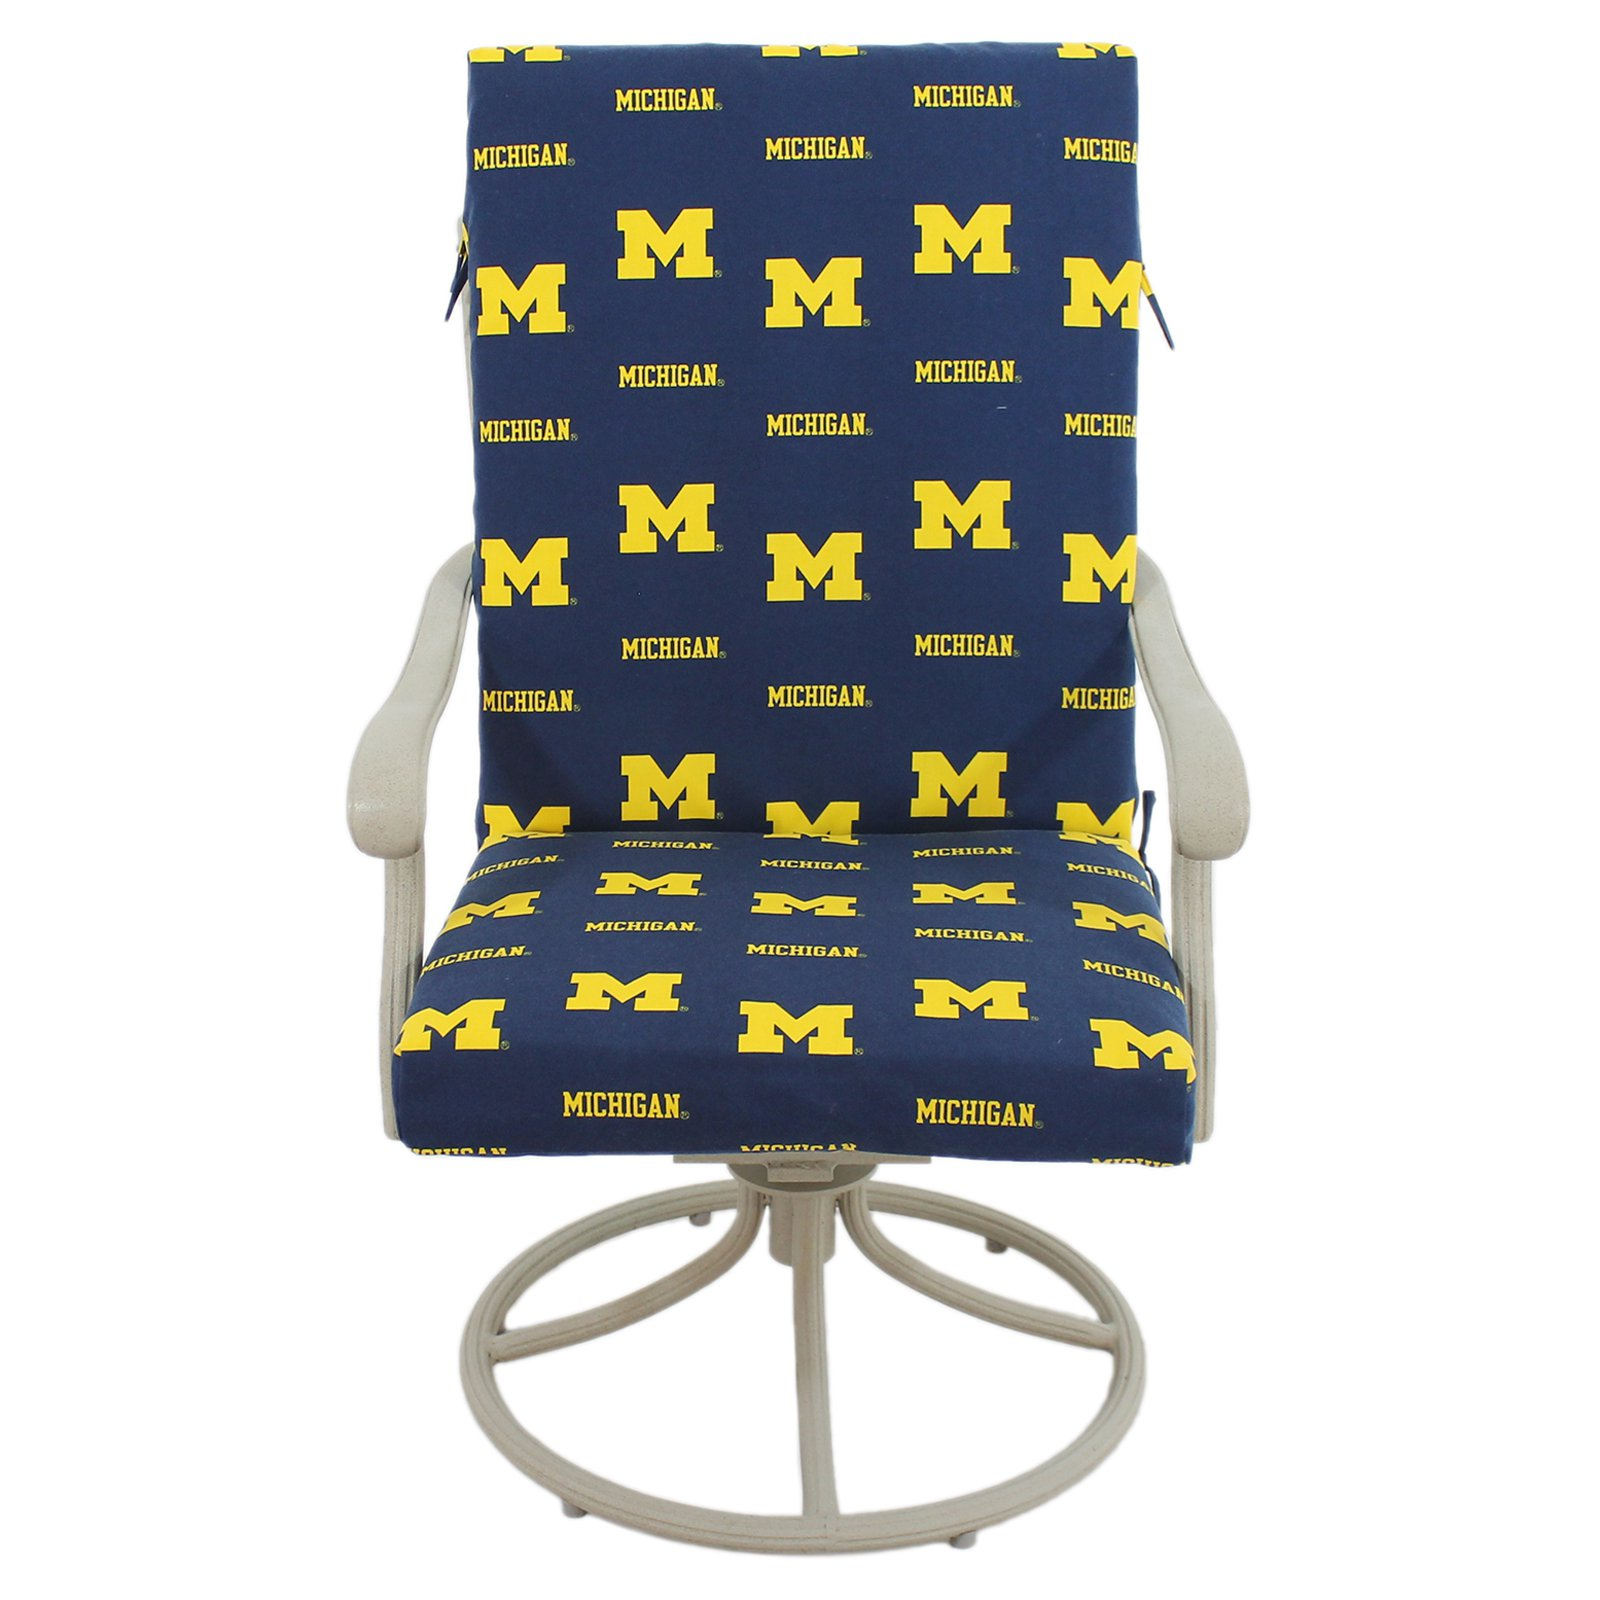 College Covers Fan Shop Michigan Wolverines 2pc Chair Cushion - 20 x 46 in